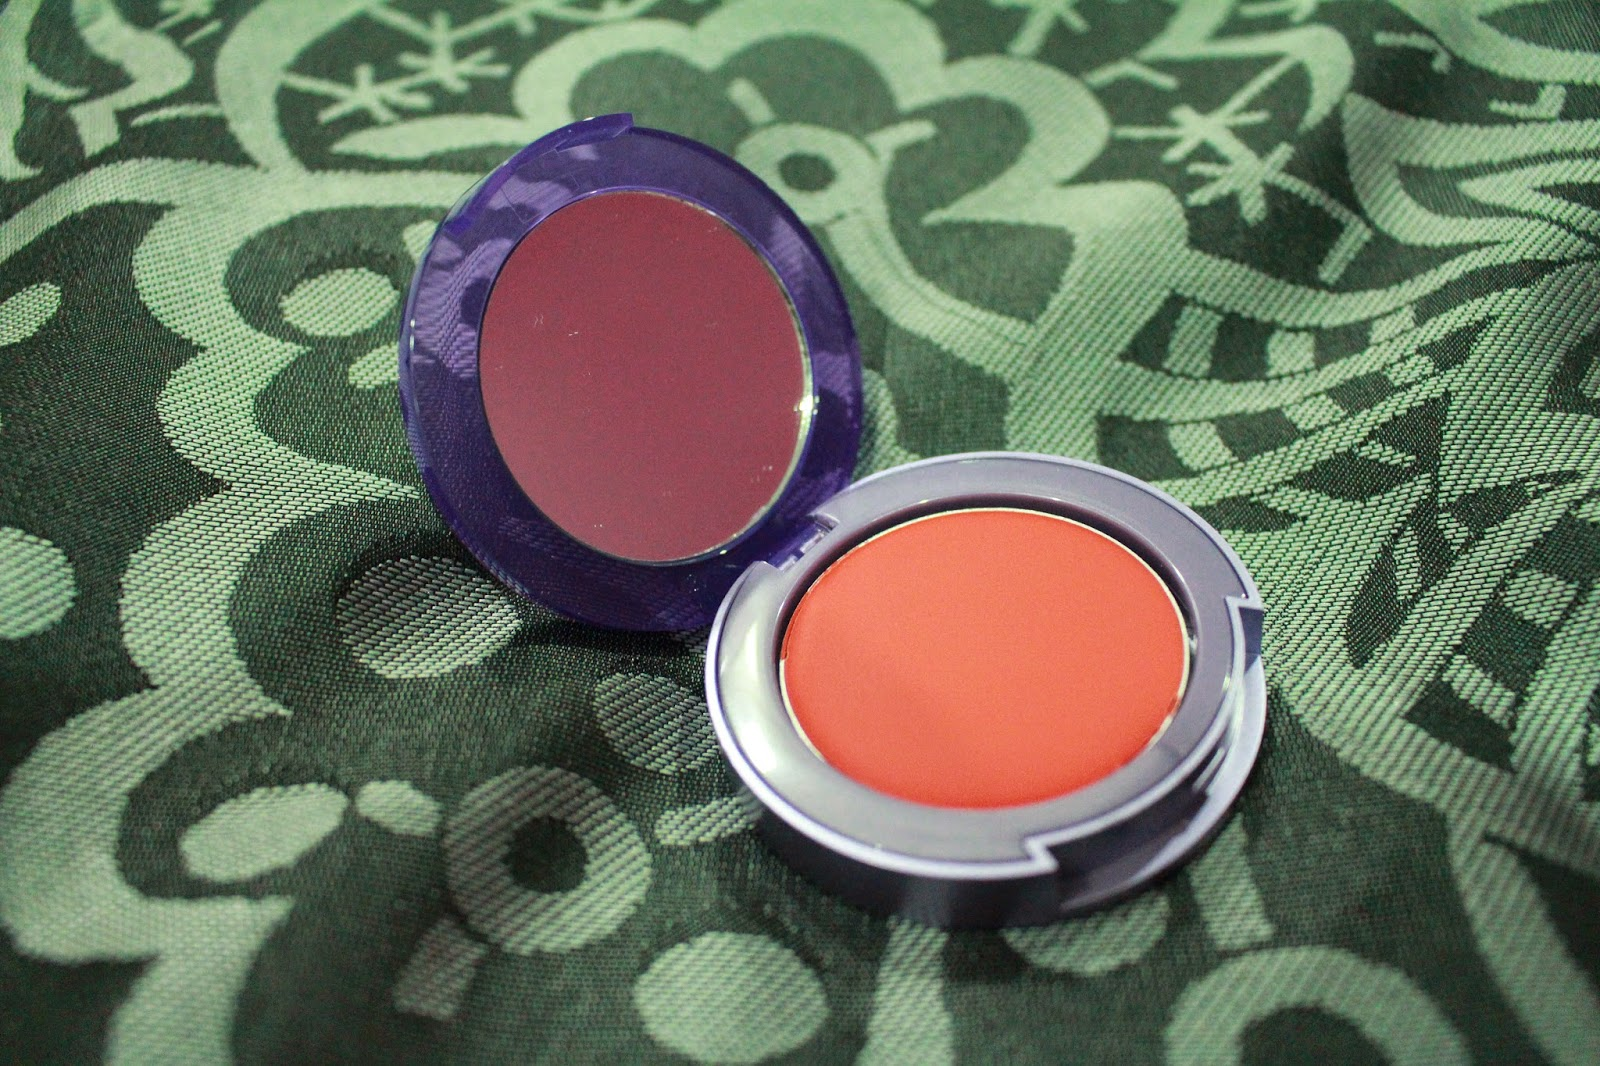 Urban Decay Afterglow Glide On Cheek Tint in Bang